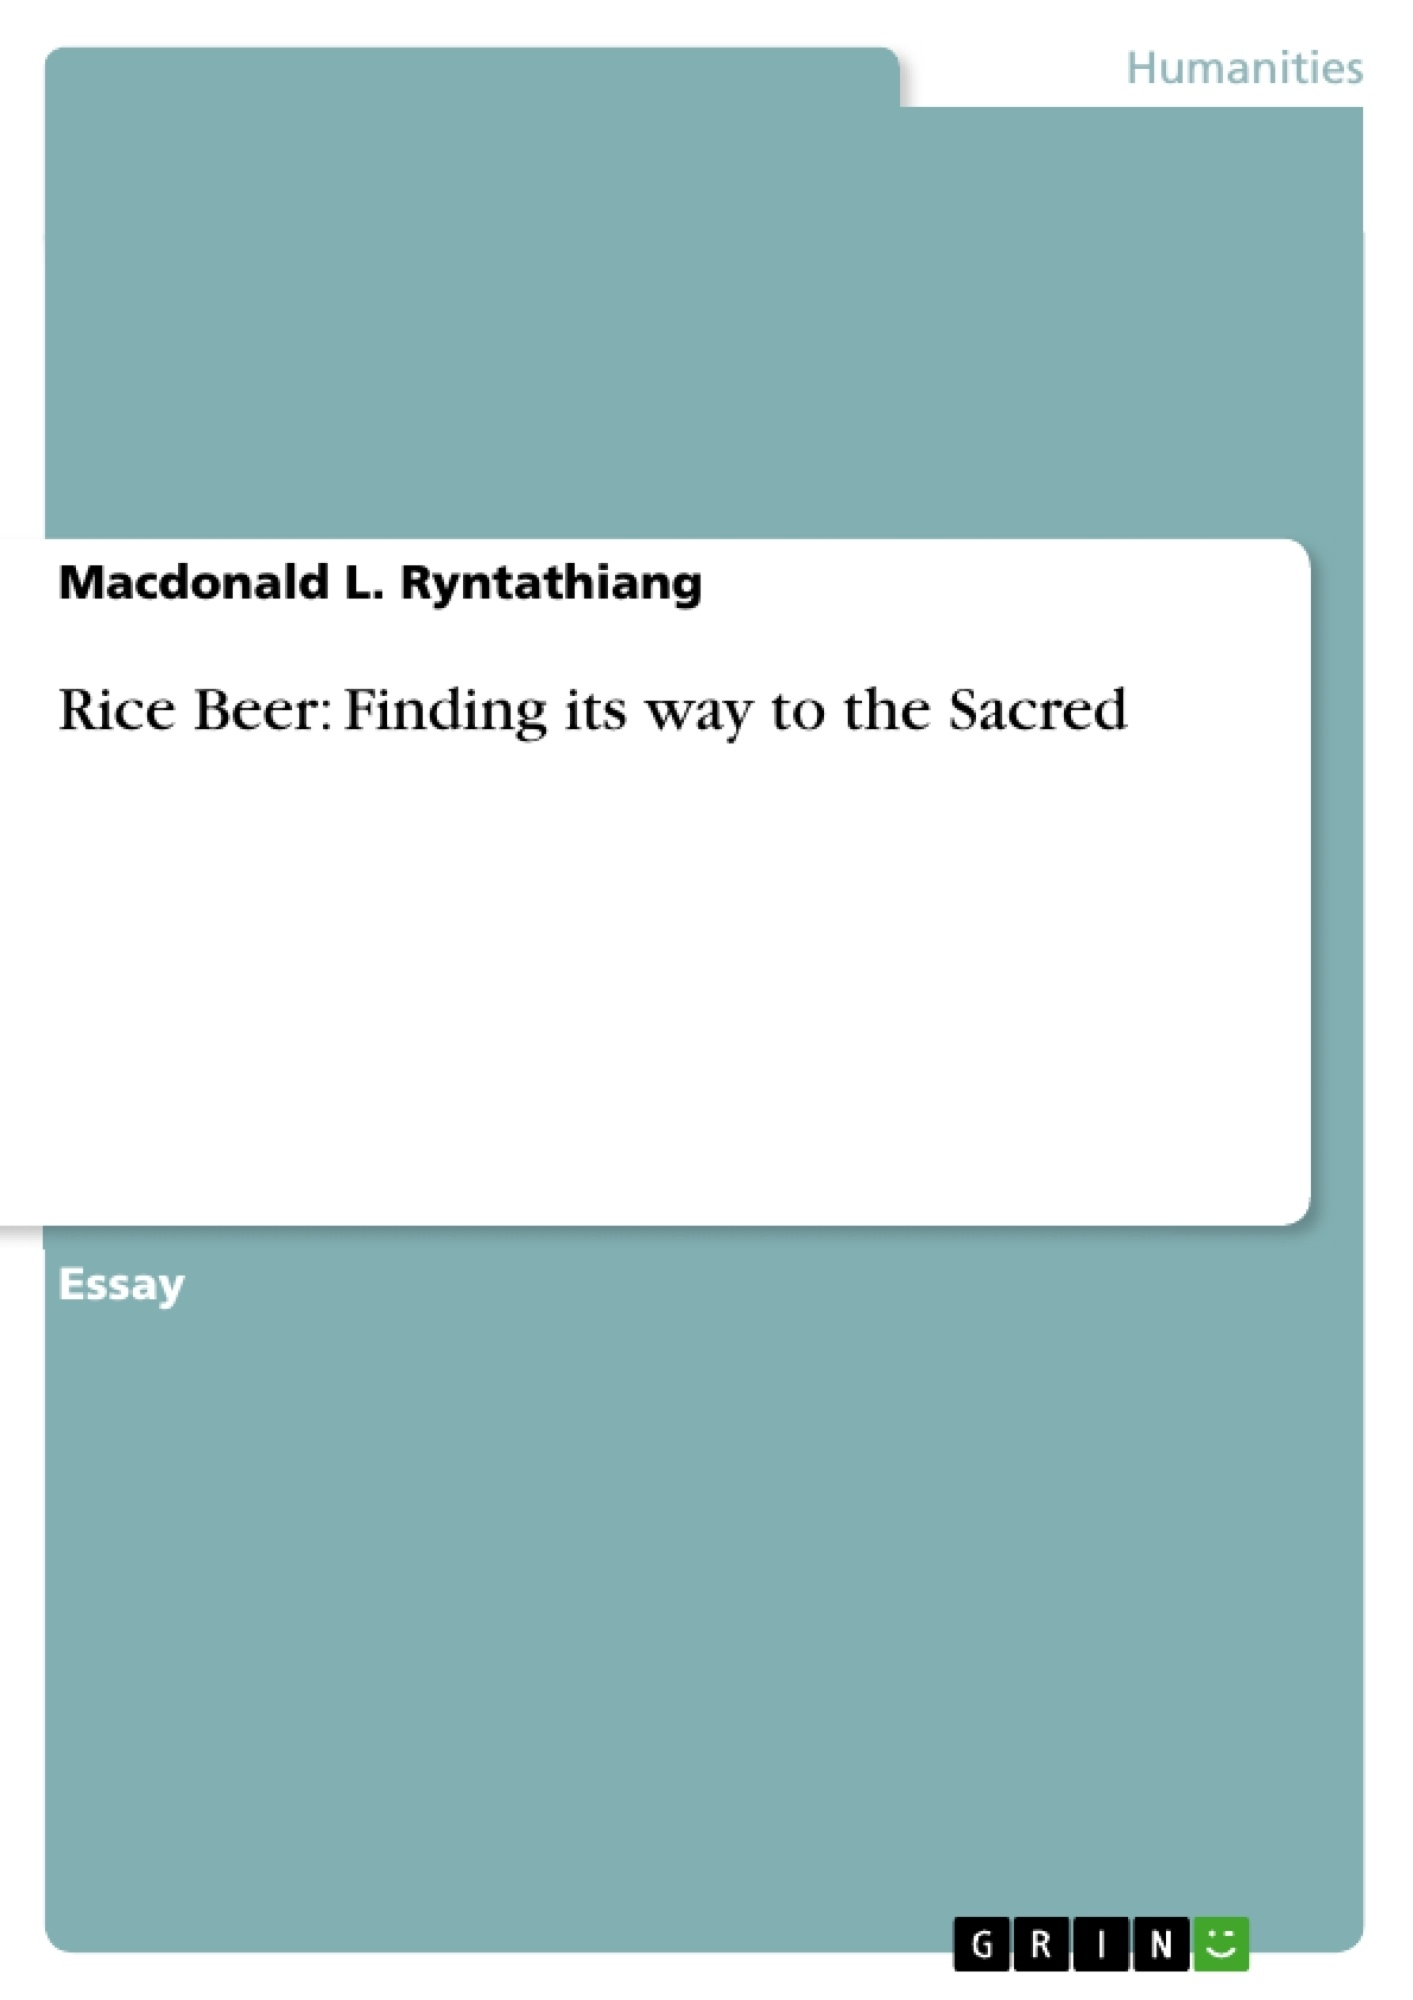 Title: Rice Beer: Finding its way to the Sacred